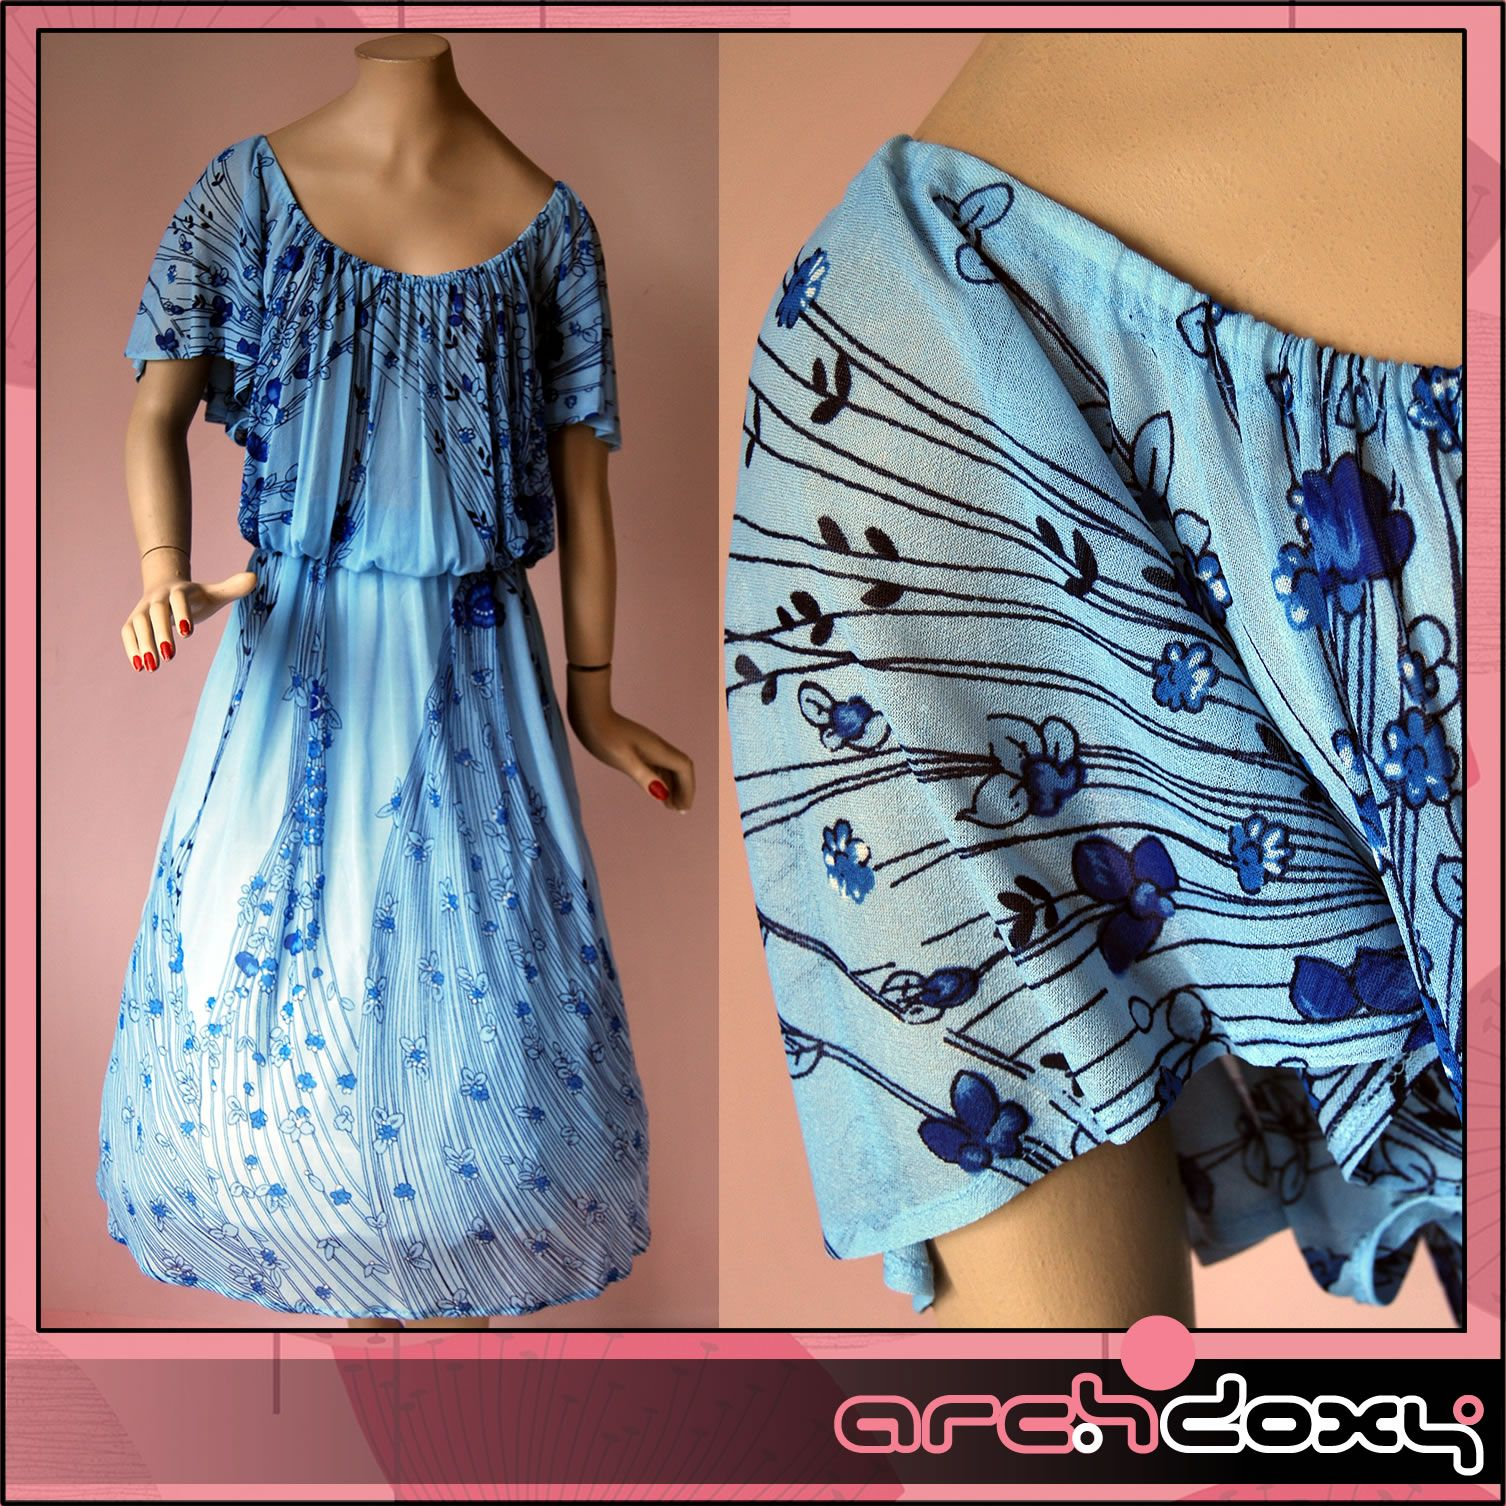 Vintage 1970s Angel Sleeve Art Deco Printed Powder Blue Chiffon Border Dress #vintagedress  http://www.ebay.co.uk/itm/Vintage-1970s-Angel-Sleeve-Art-Deco-Printed-Powder-Blue-Chiffon-Border-Dress-14-/371670861230?ssPageName=STRK:MESE:IT